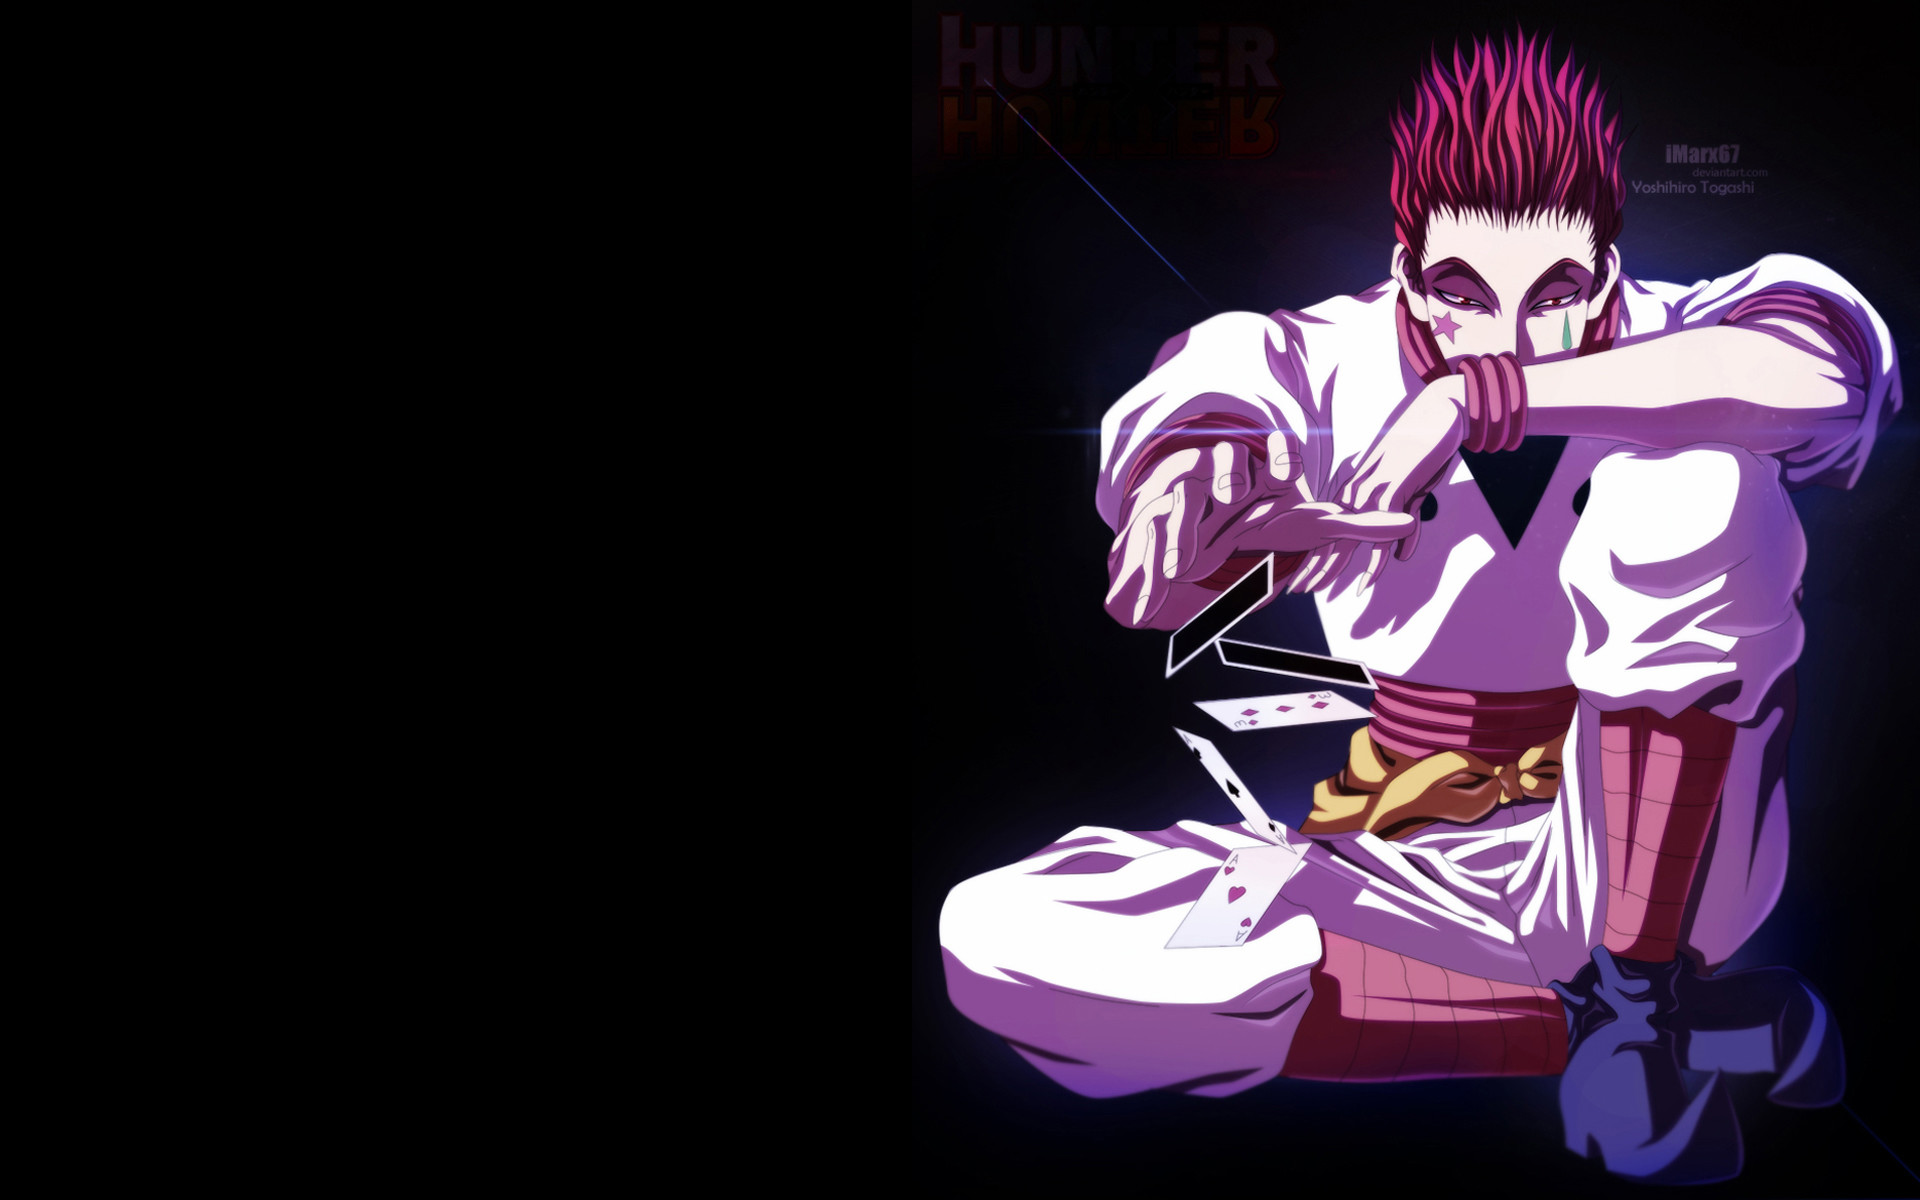 Hunter x Hunter wallpaper for (Android) Free Download on MoboMarket